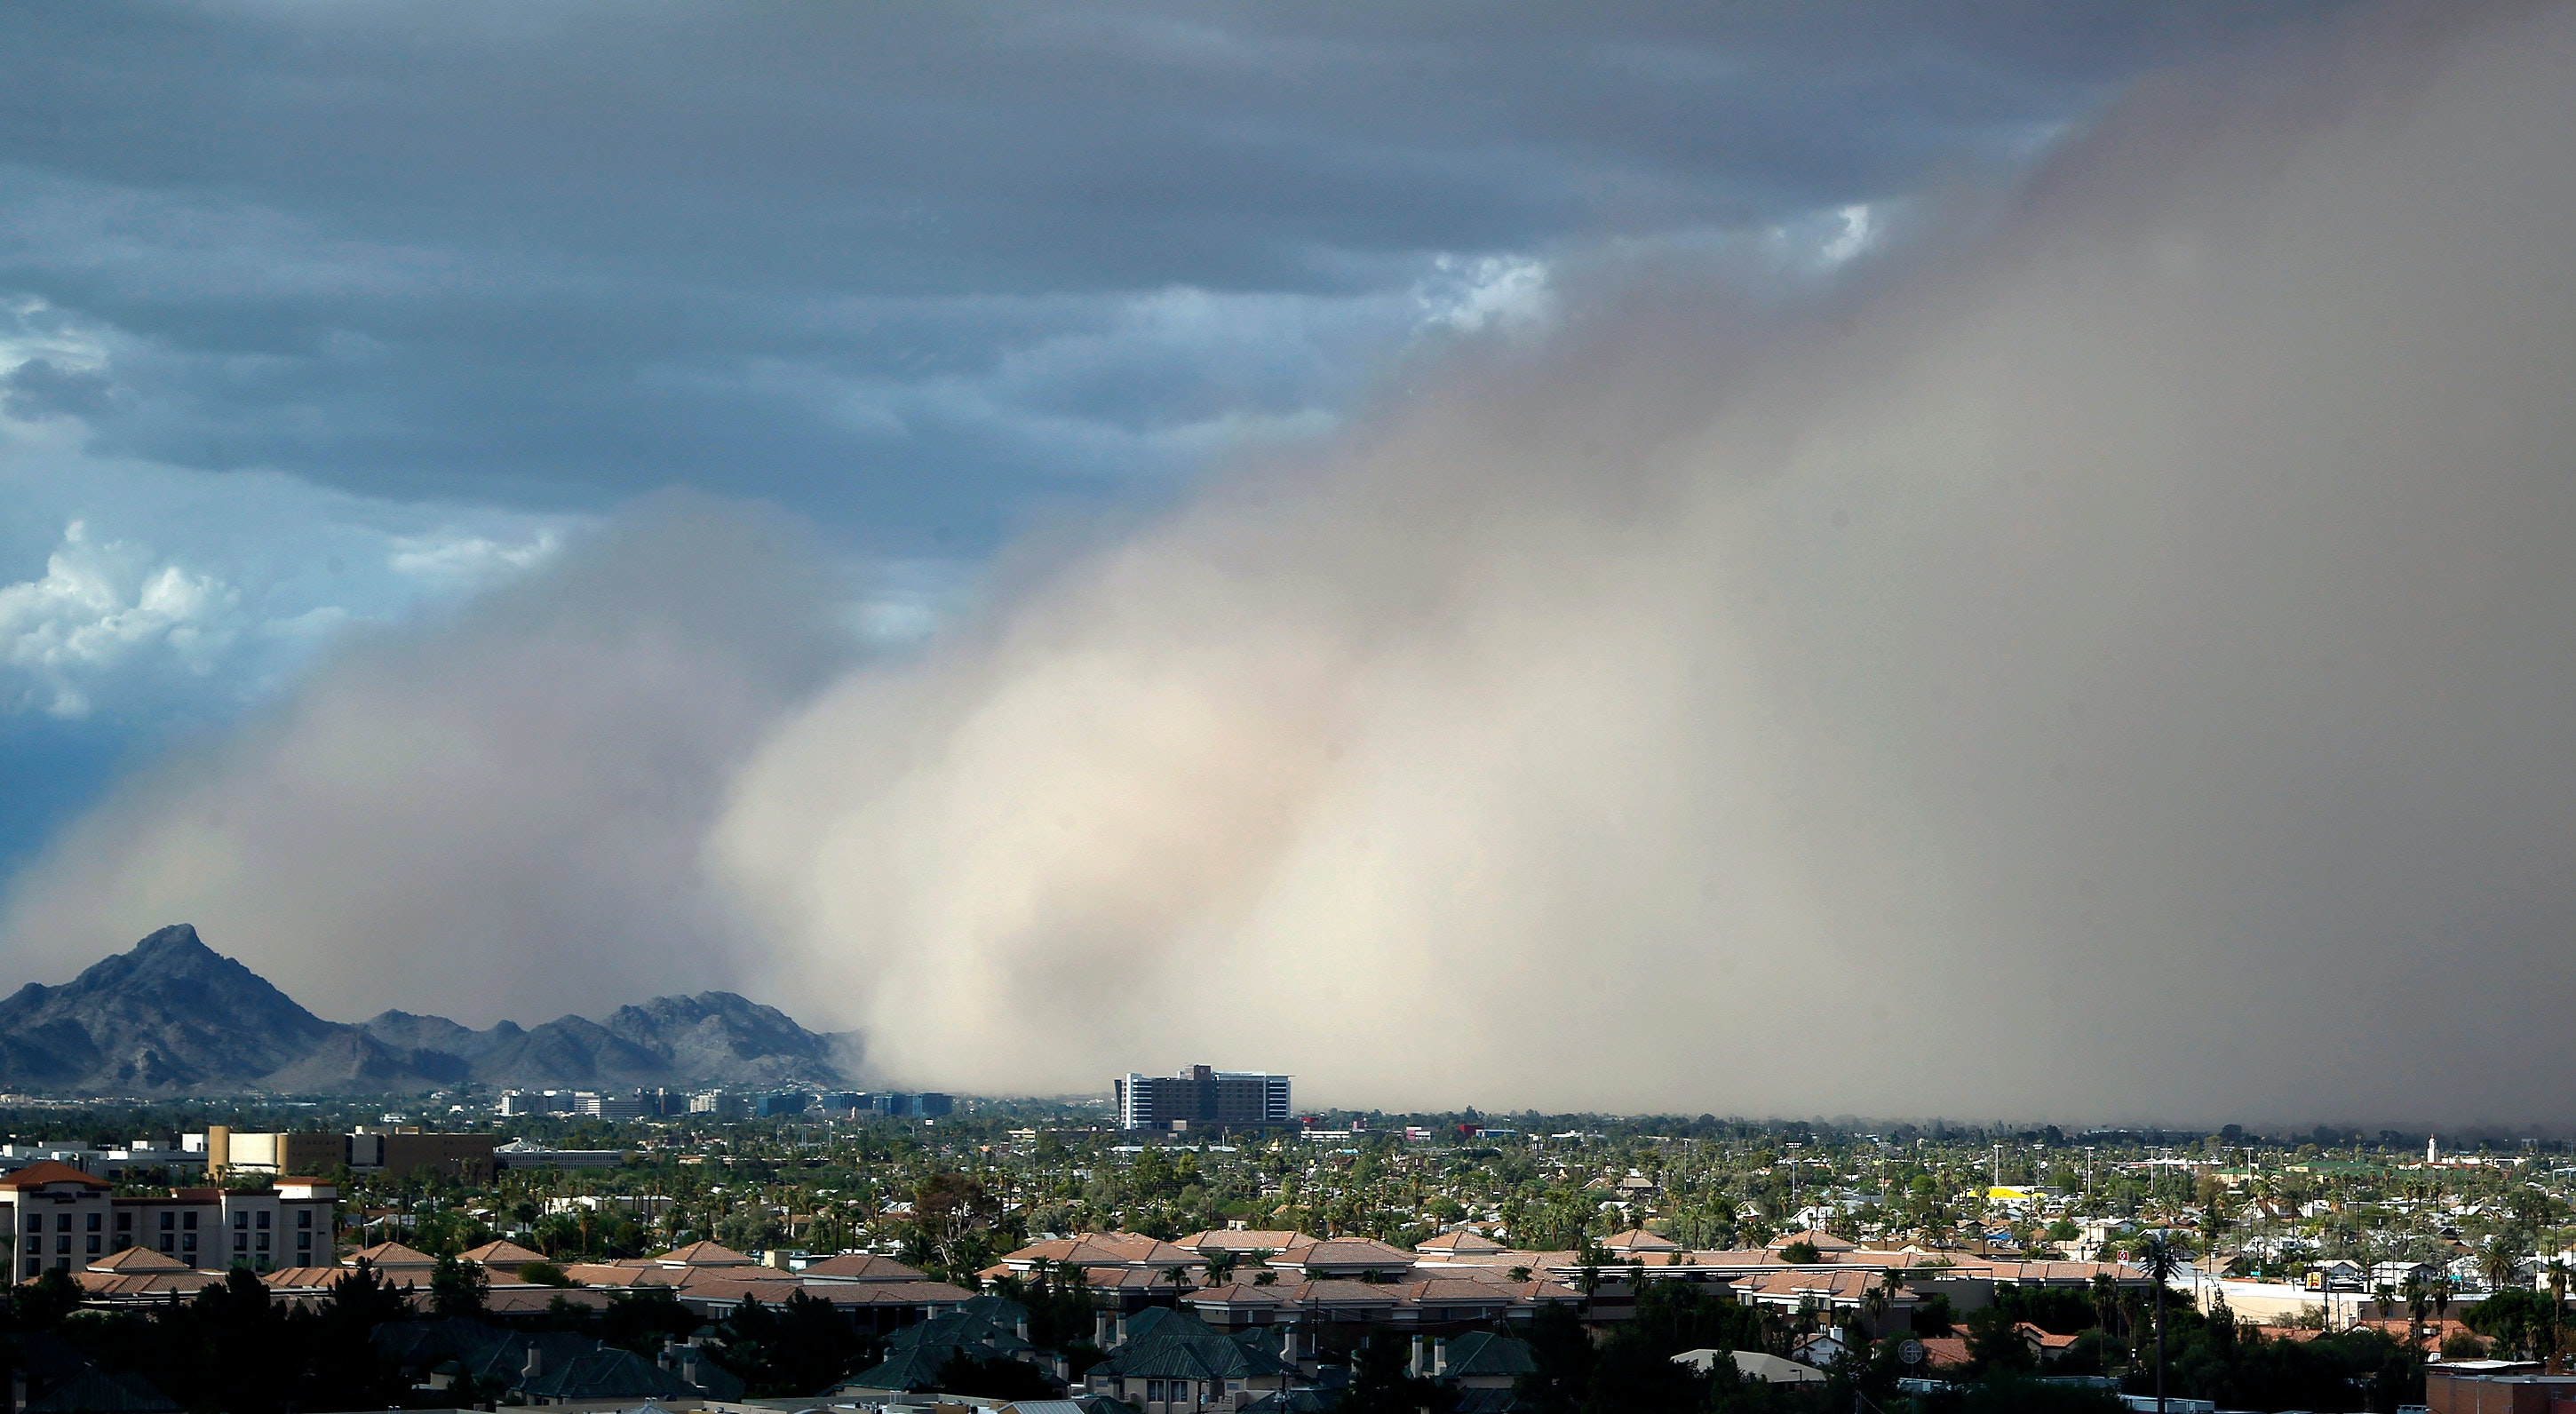 Increased deaths and illnesses from inhaling airborne dust: An understudied impact of climate change